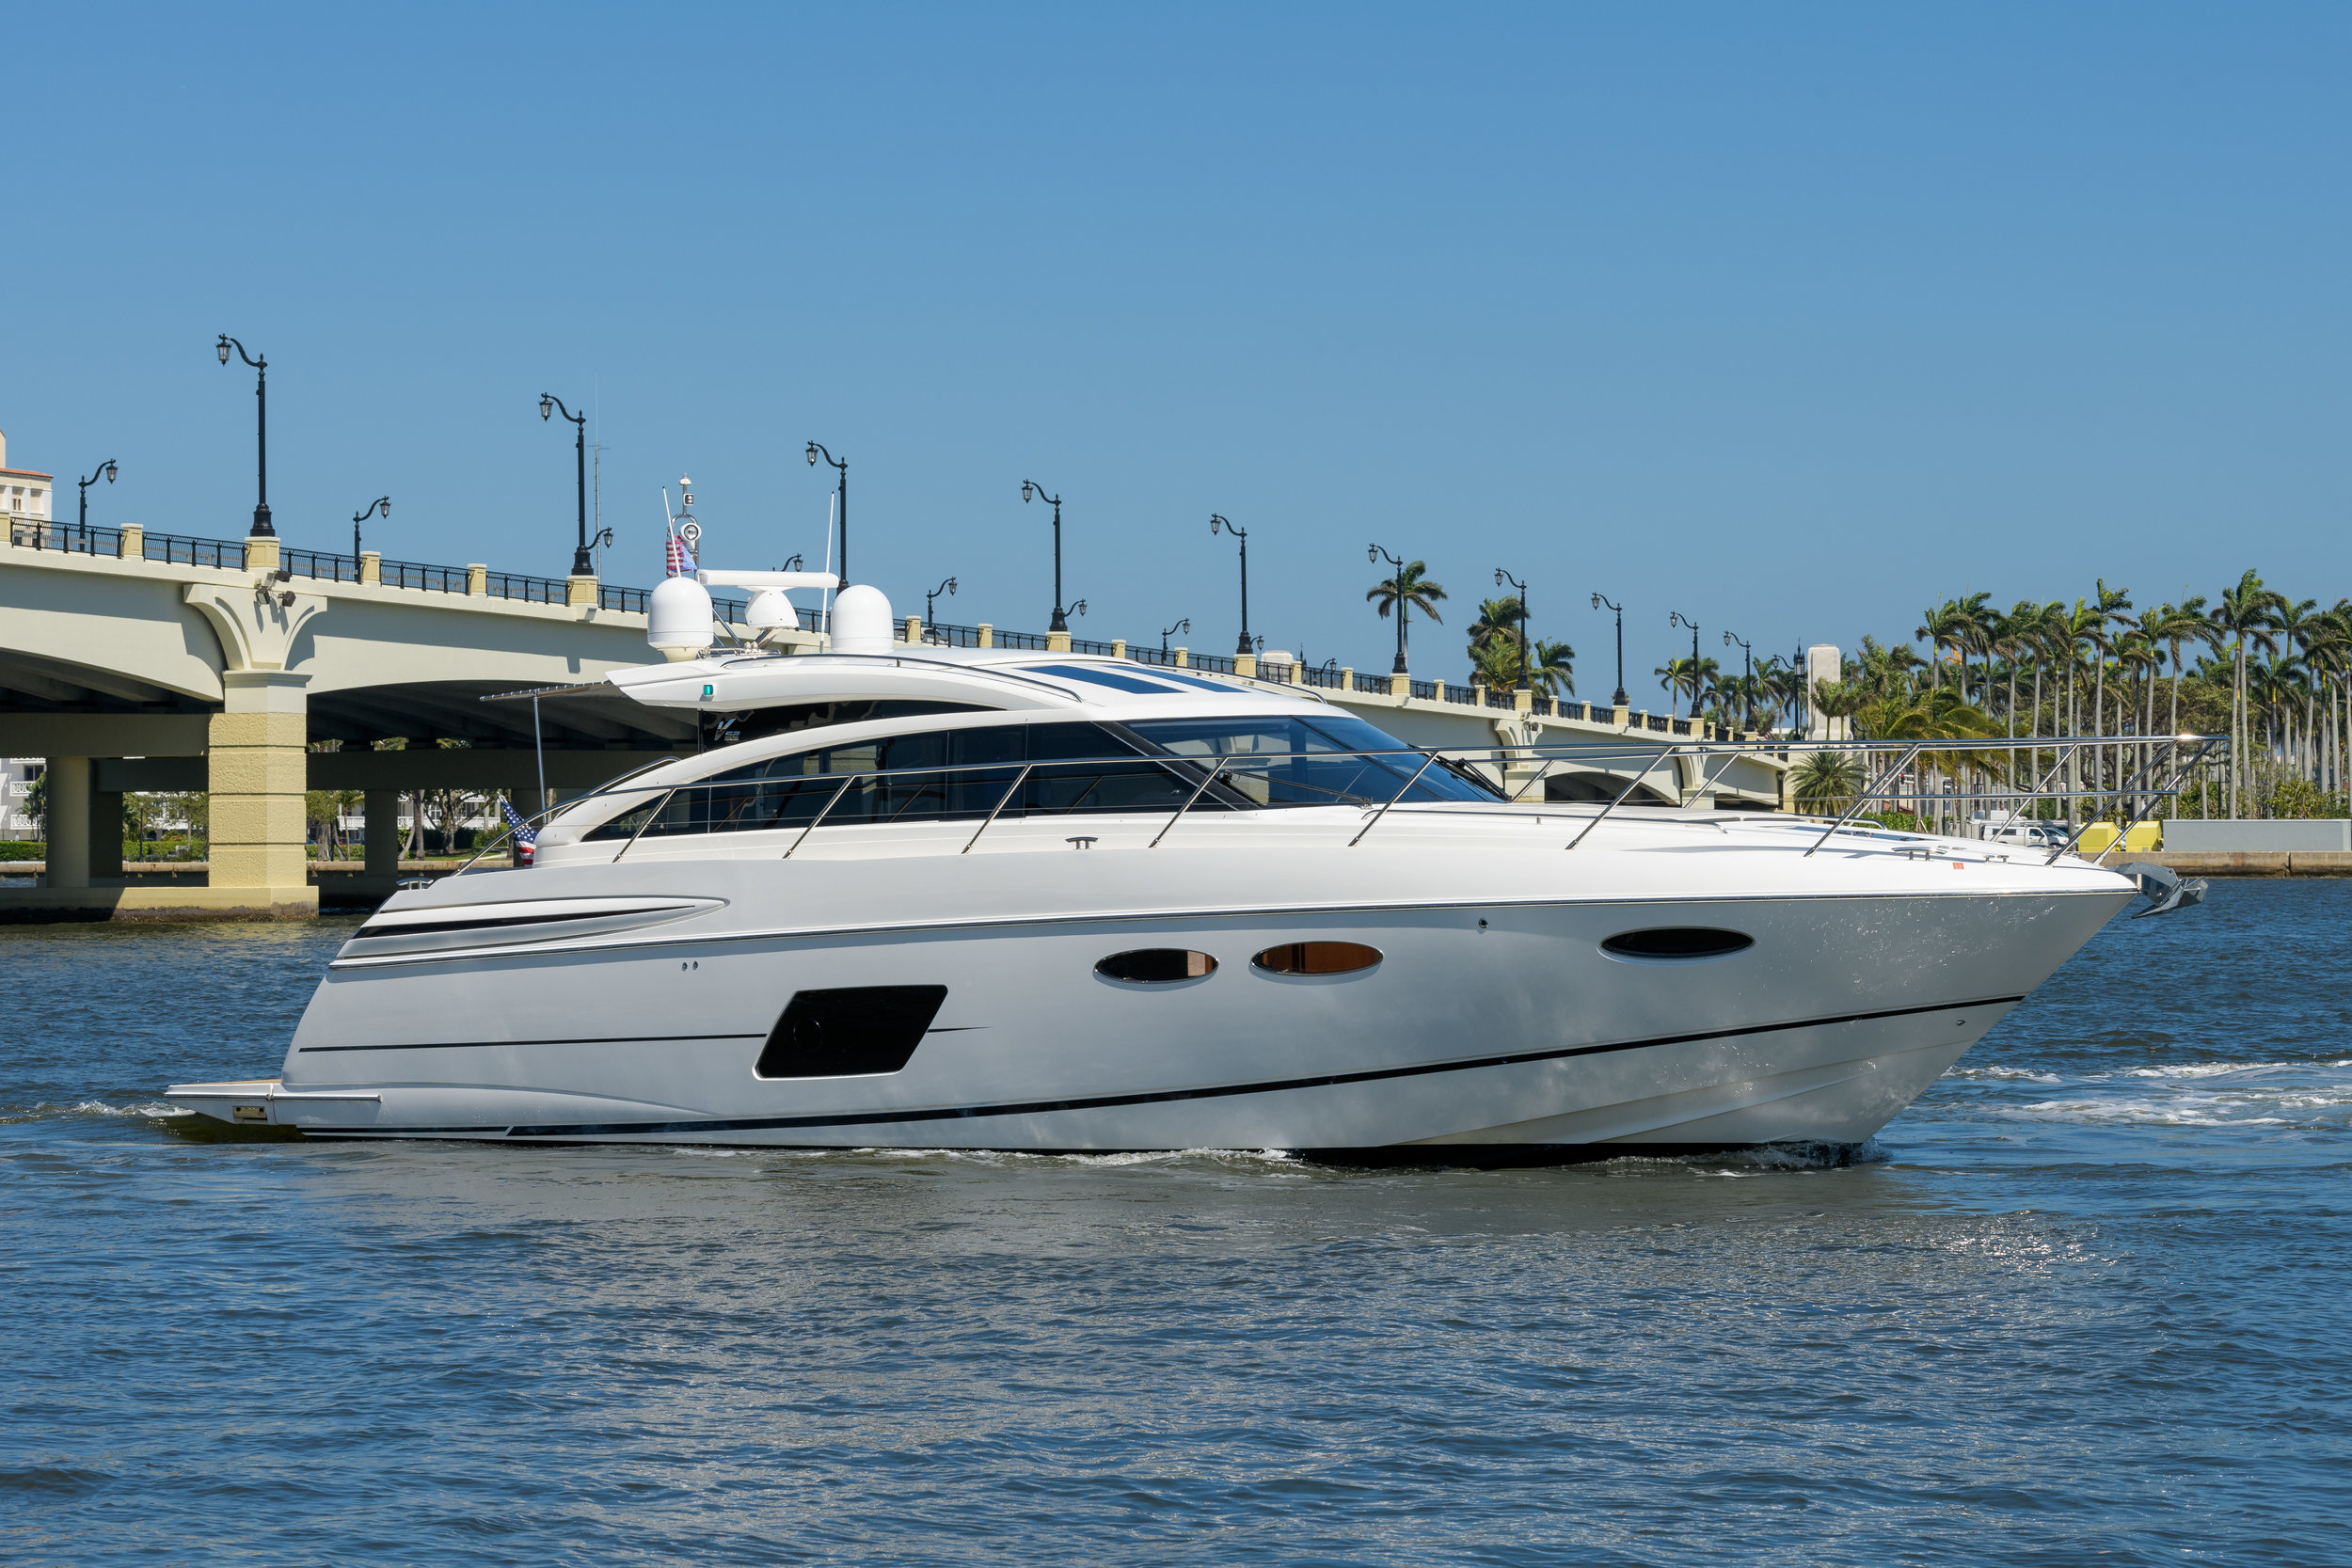 2014 Model Princess V52  - CAN DO V